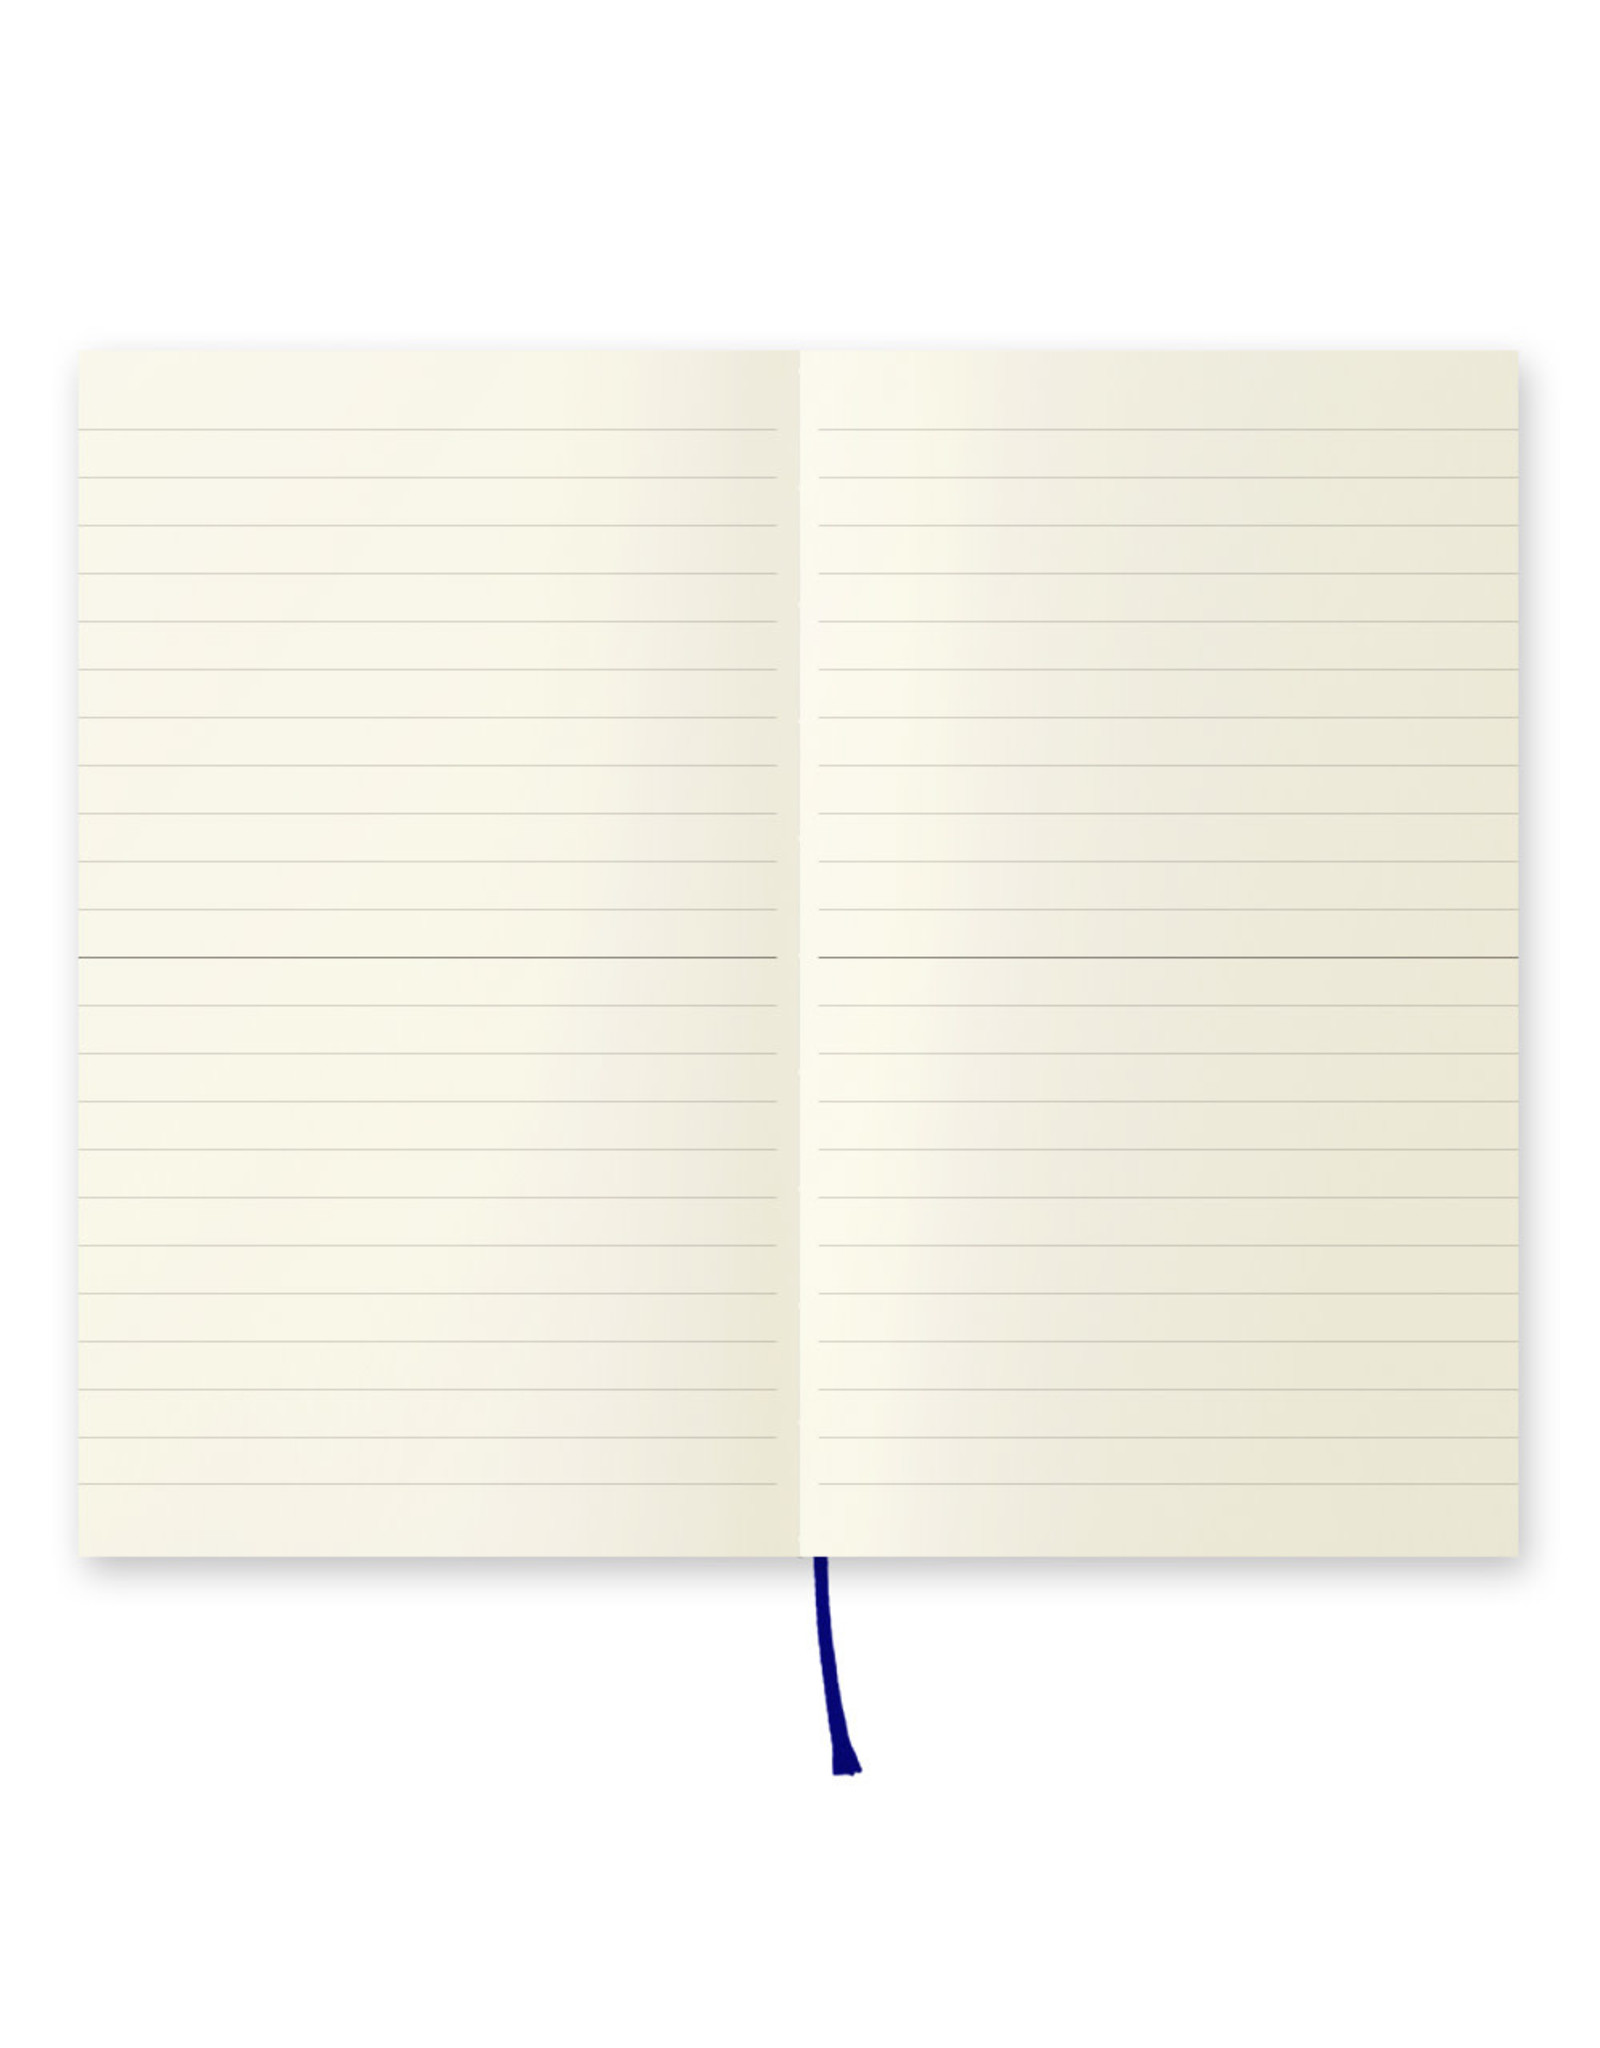 Designphil Inc. MD NOTEBOOK  LINED ENGLISH CAPTION